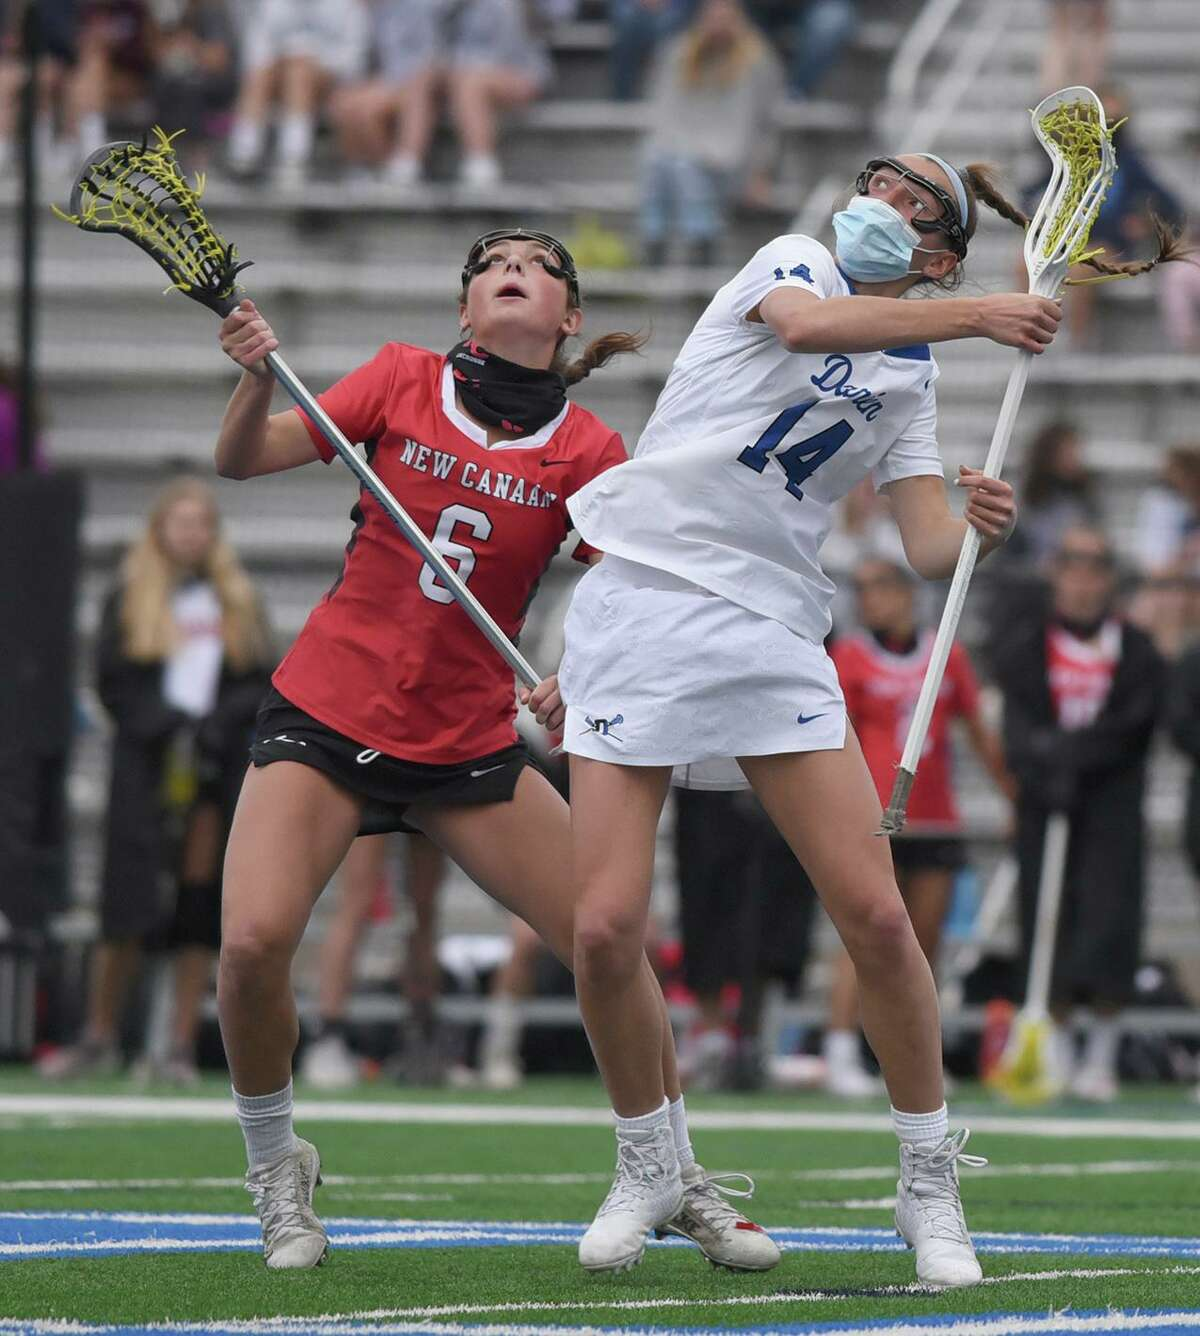 New Canaan's Kaleigh Harden (6) and Darien's Colette Quinn (14) battle on a draw during a game on Monday.